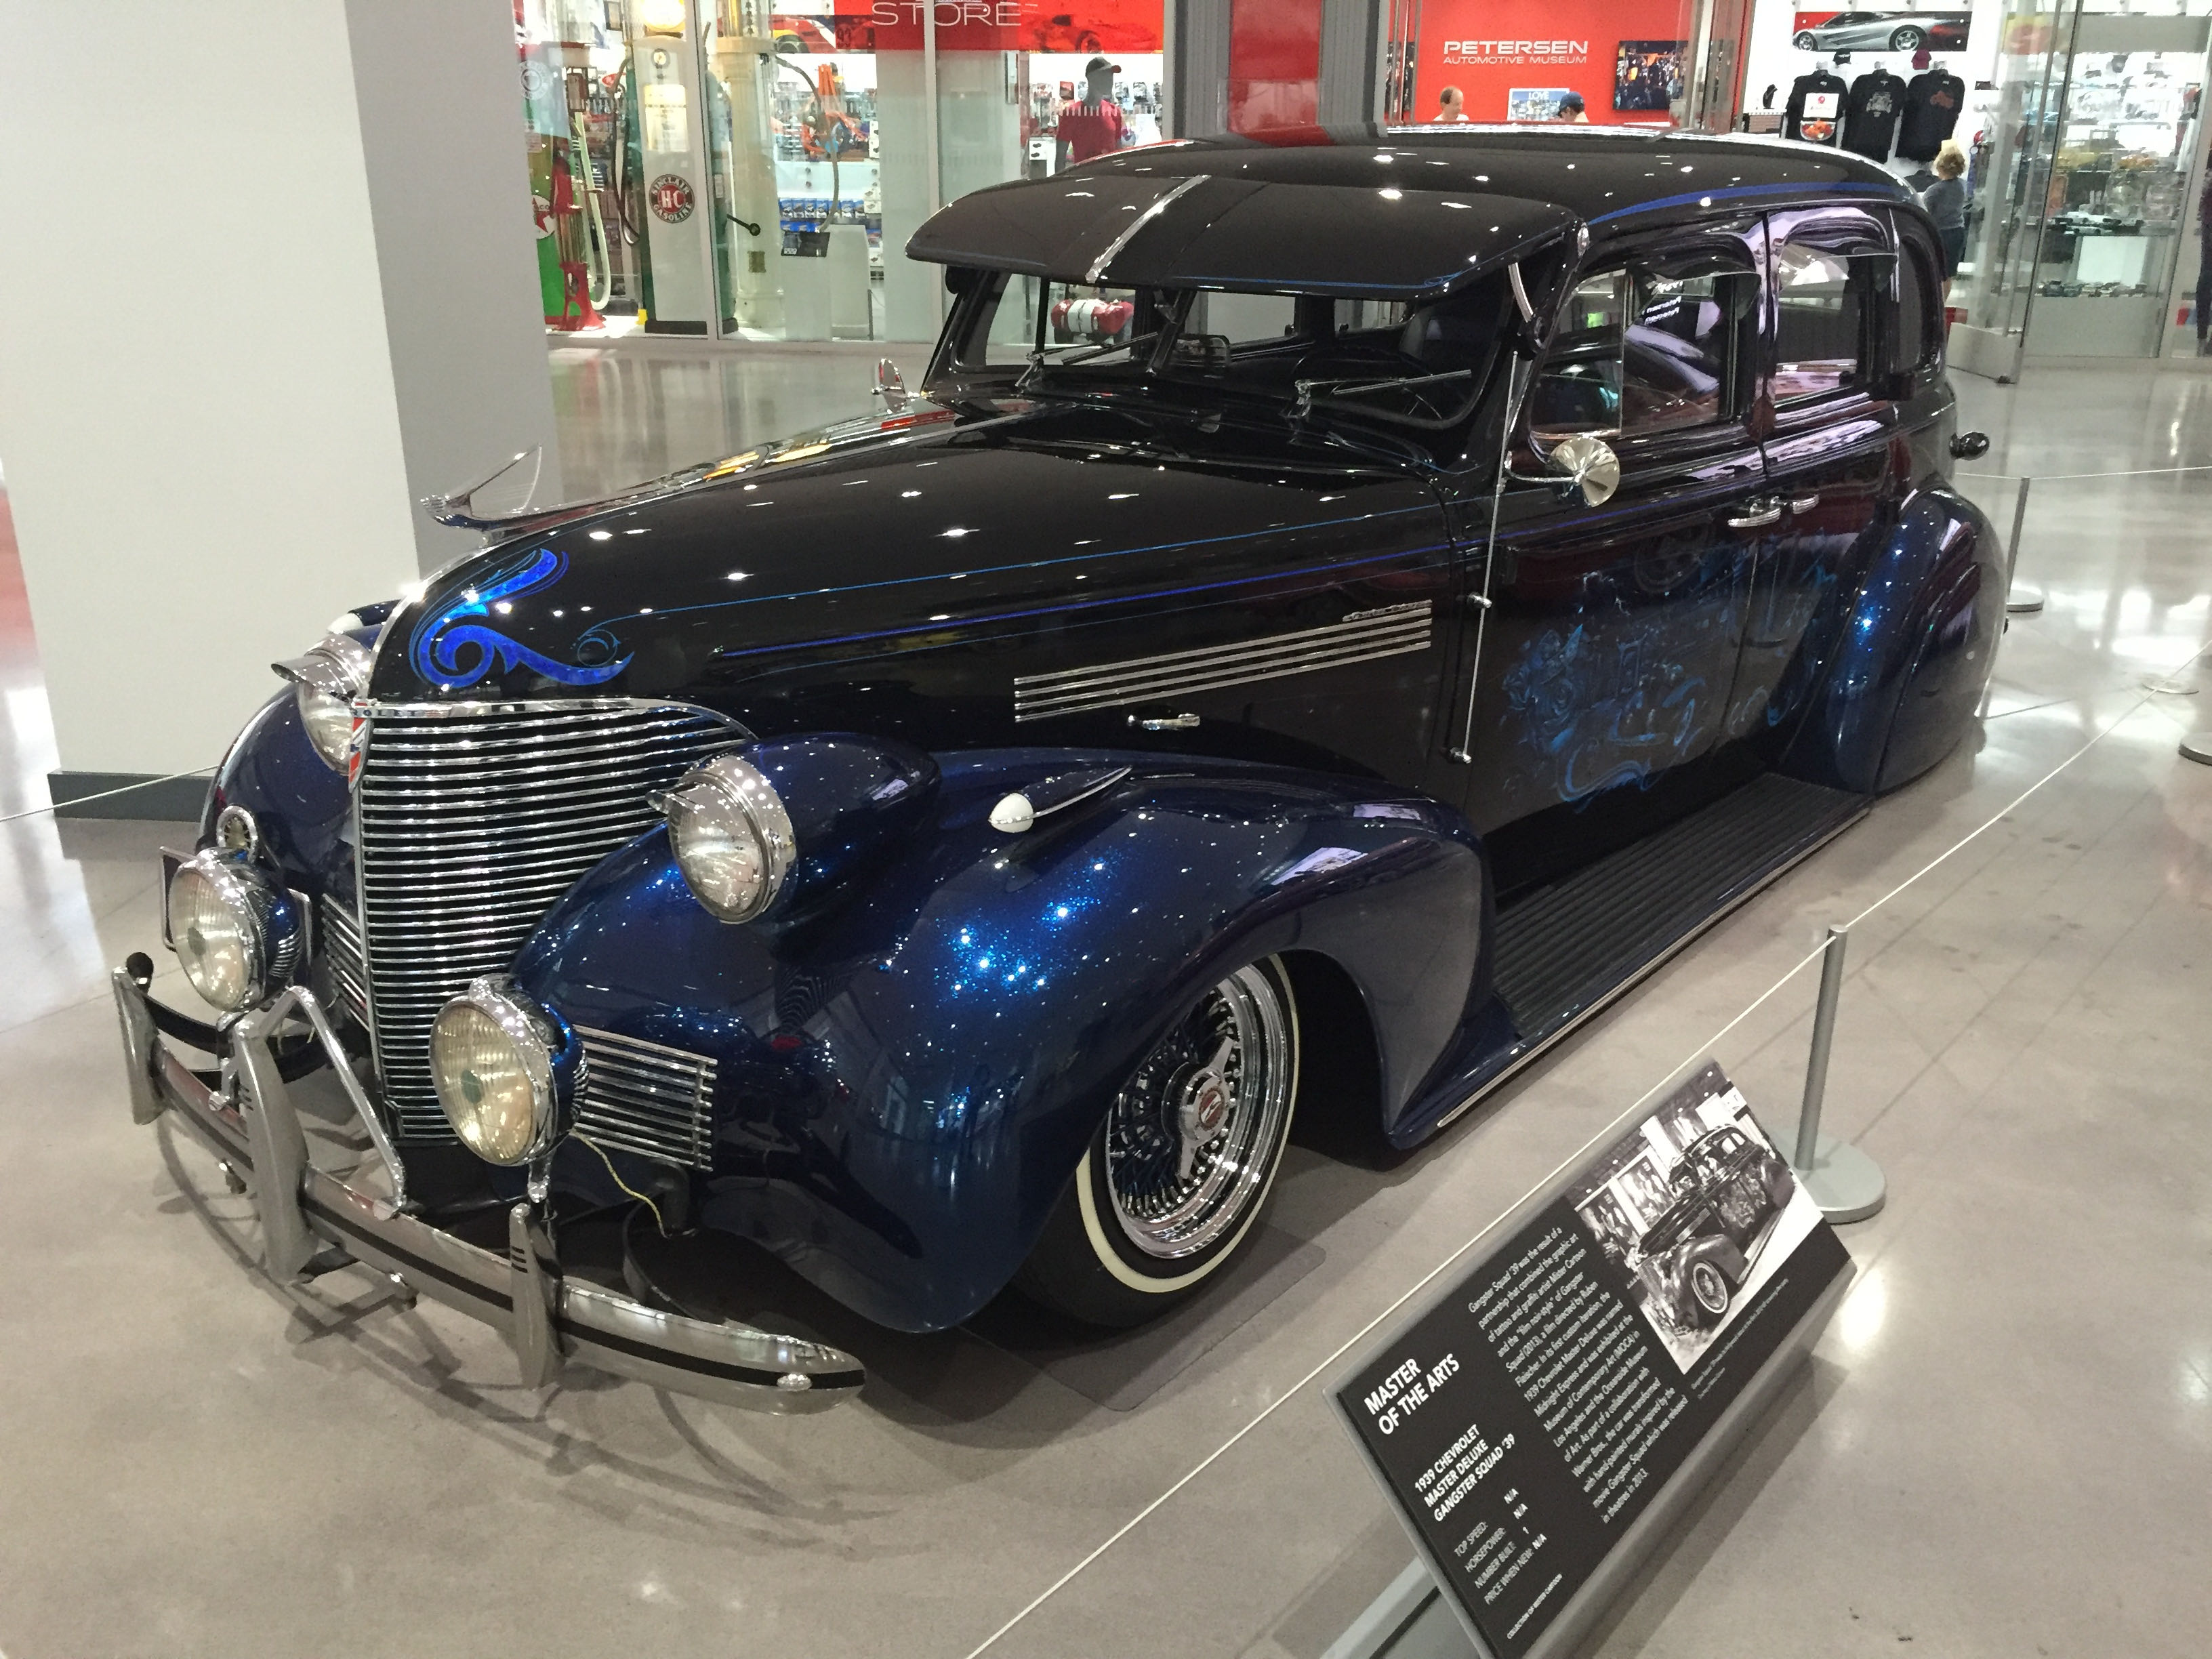 653c6885bb9cc Lowrider Renaissance and the 'art in defiance' at the Petersen ...